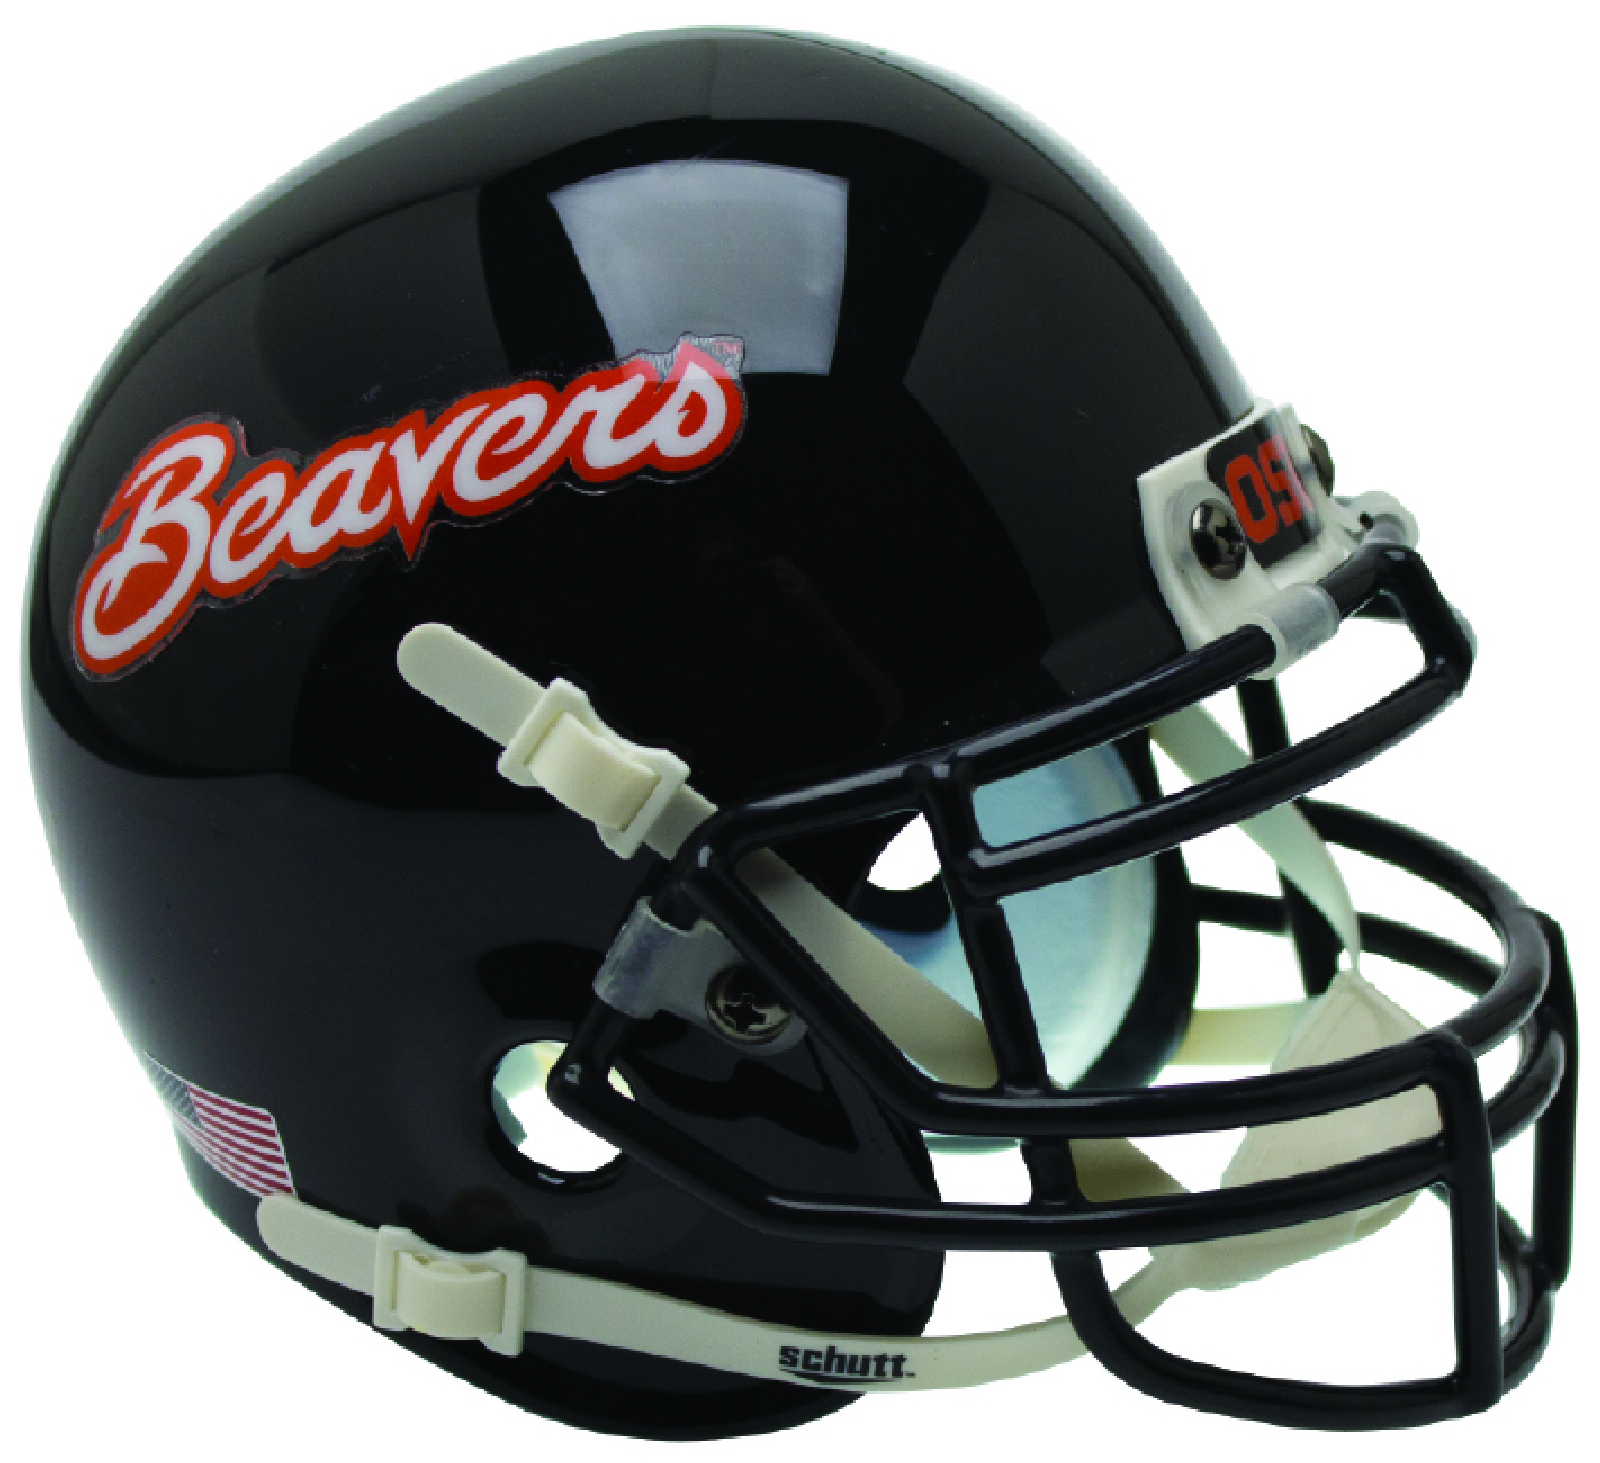 Oregon State Beavers Authentic College XP Football Helmet Schutt <B>Black Beavers</B>